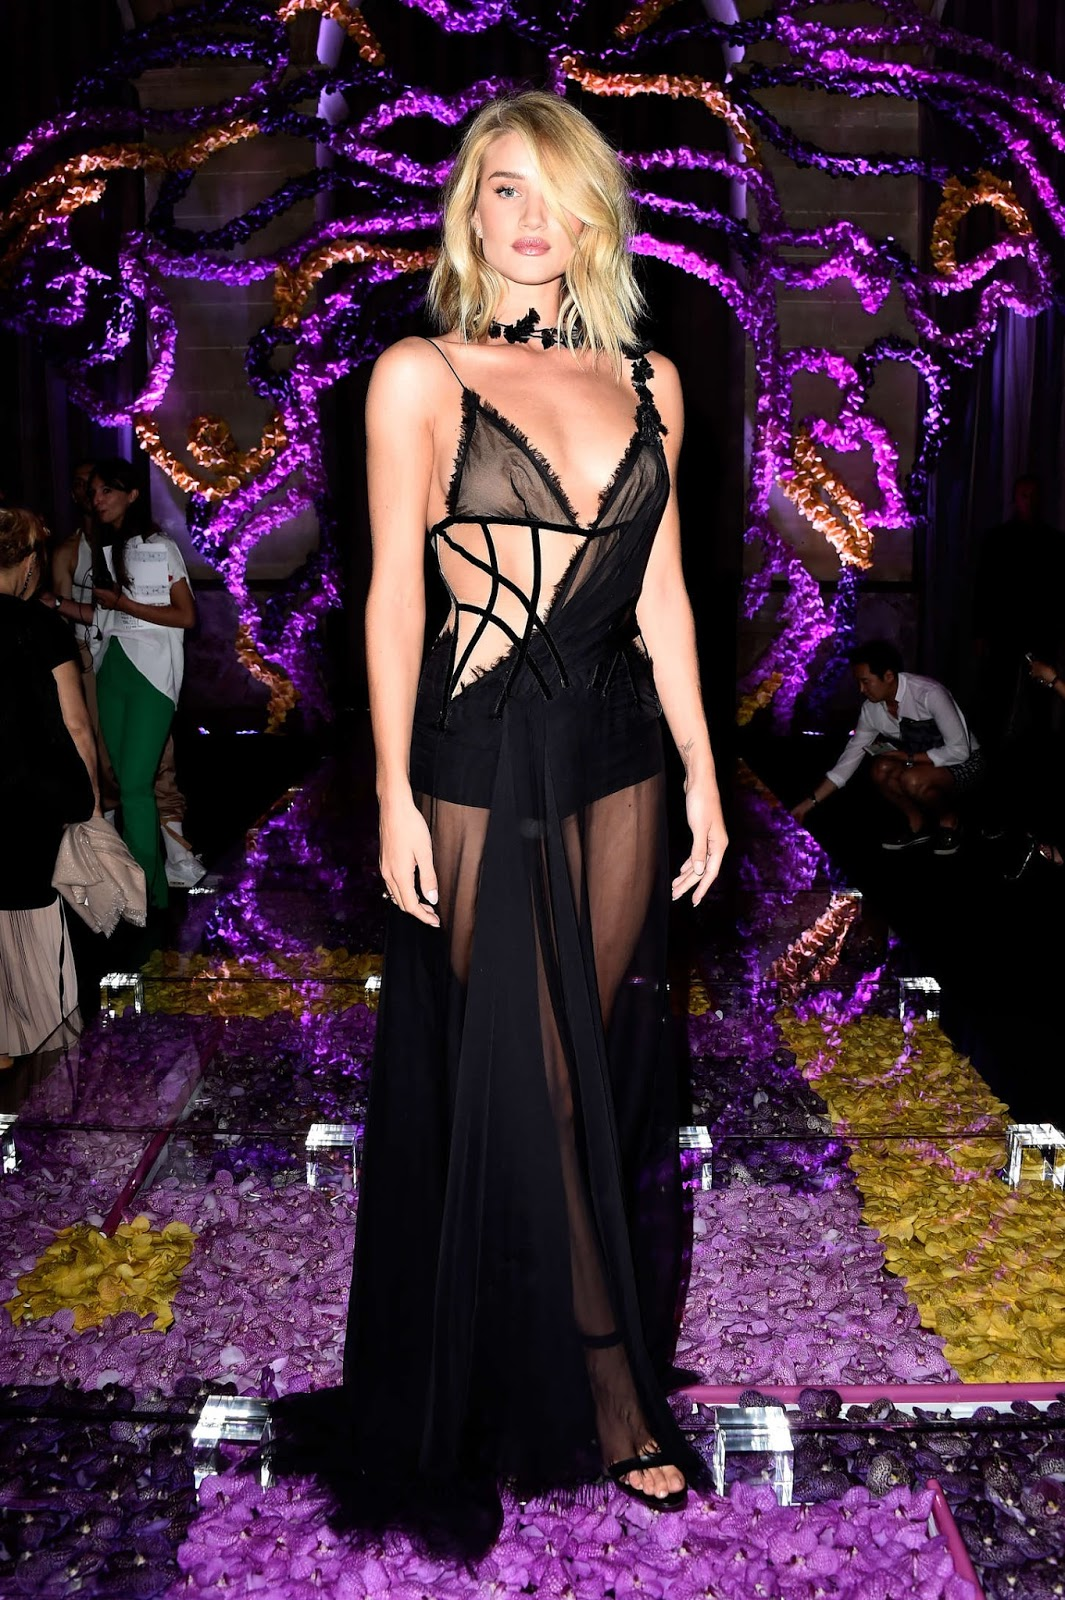 Rosie Huntington-Whiteley goes braless in a sheer dress at the Atelier Versace Fall/Winter 2015 Show